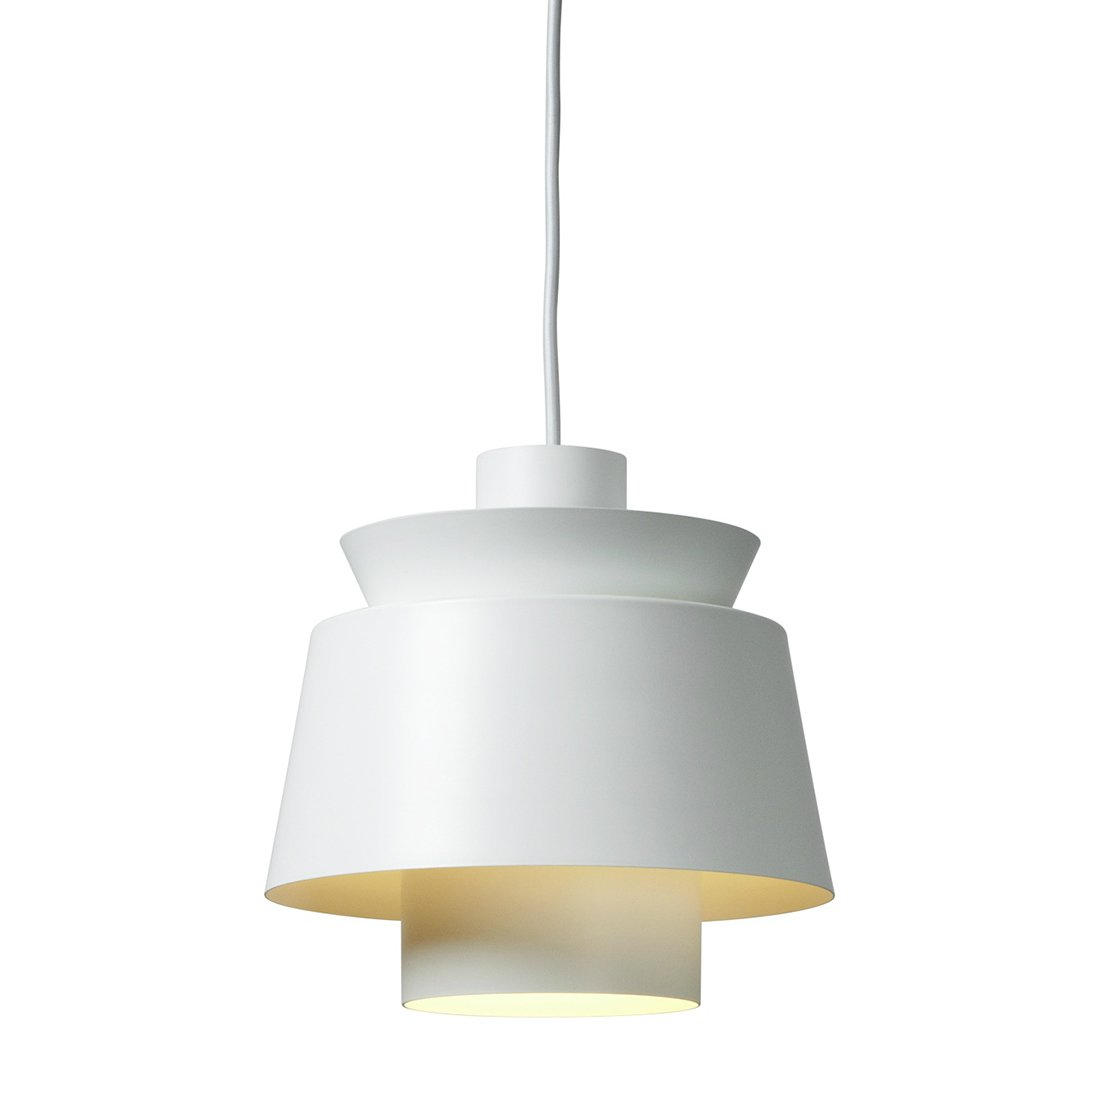 &Tradition Utzon Hanglamp Wit